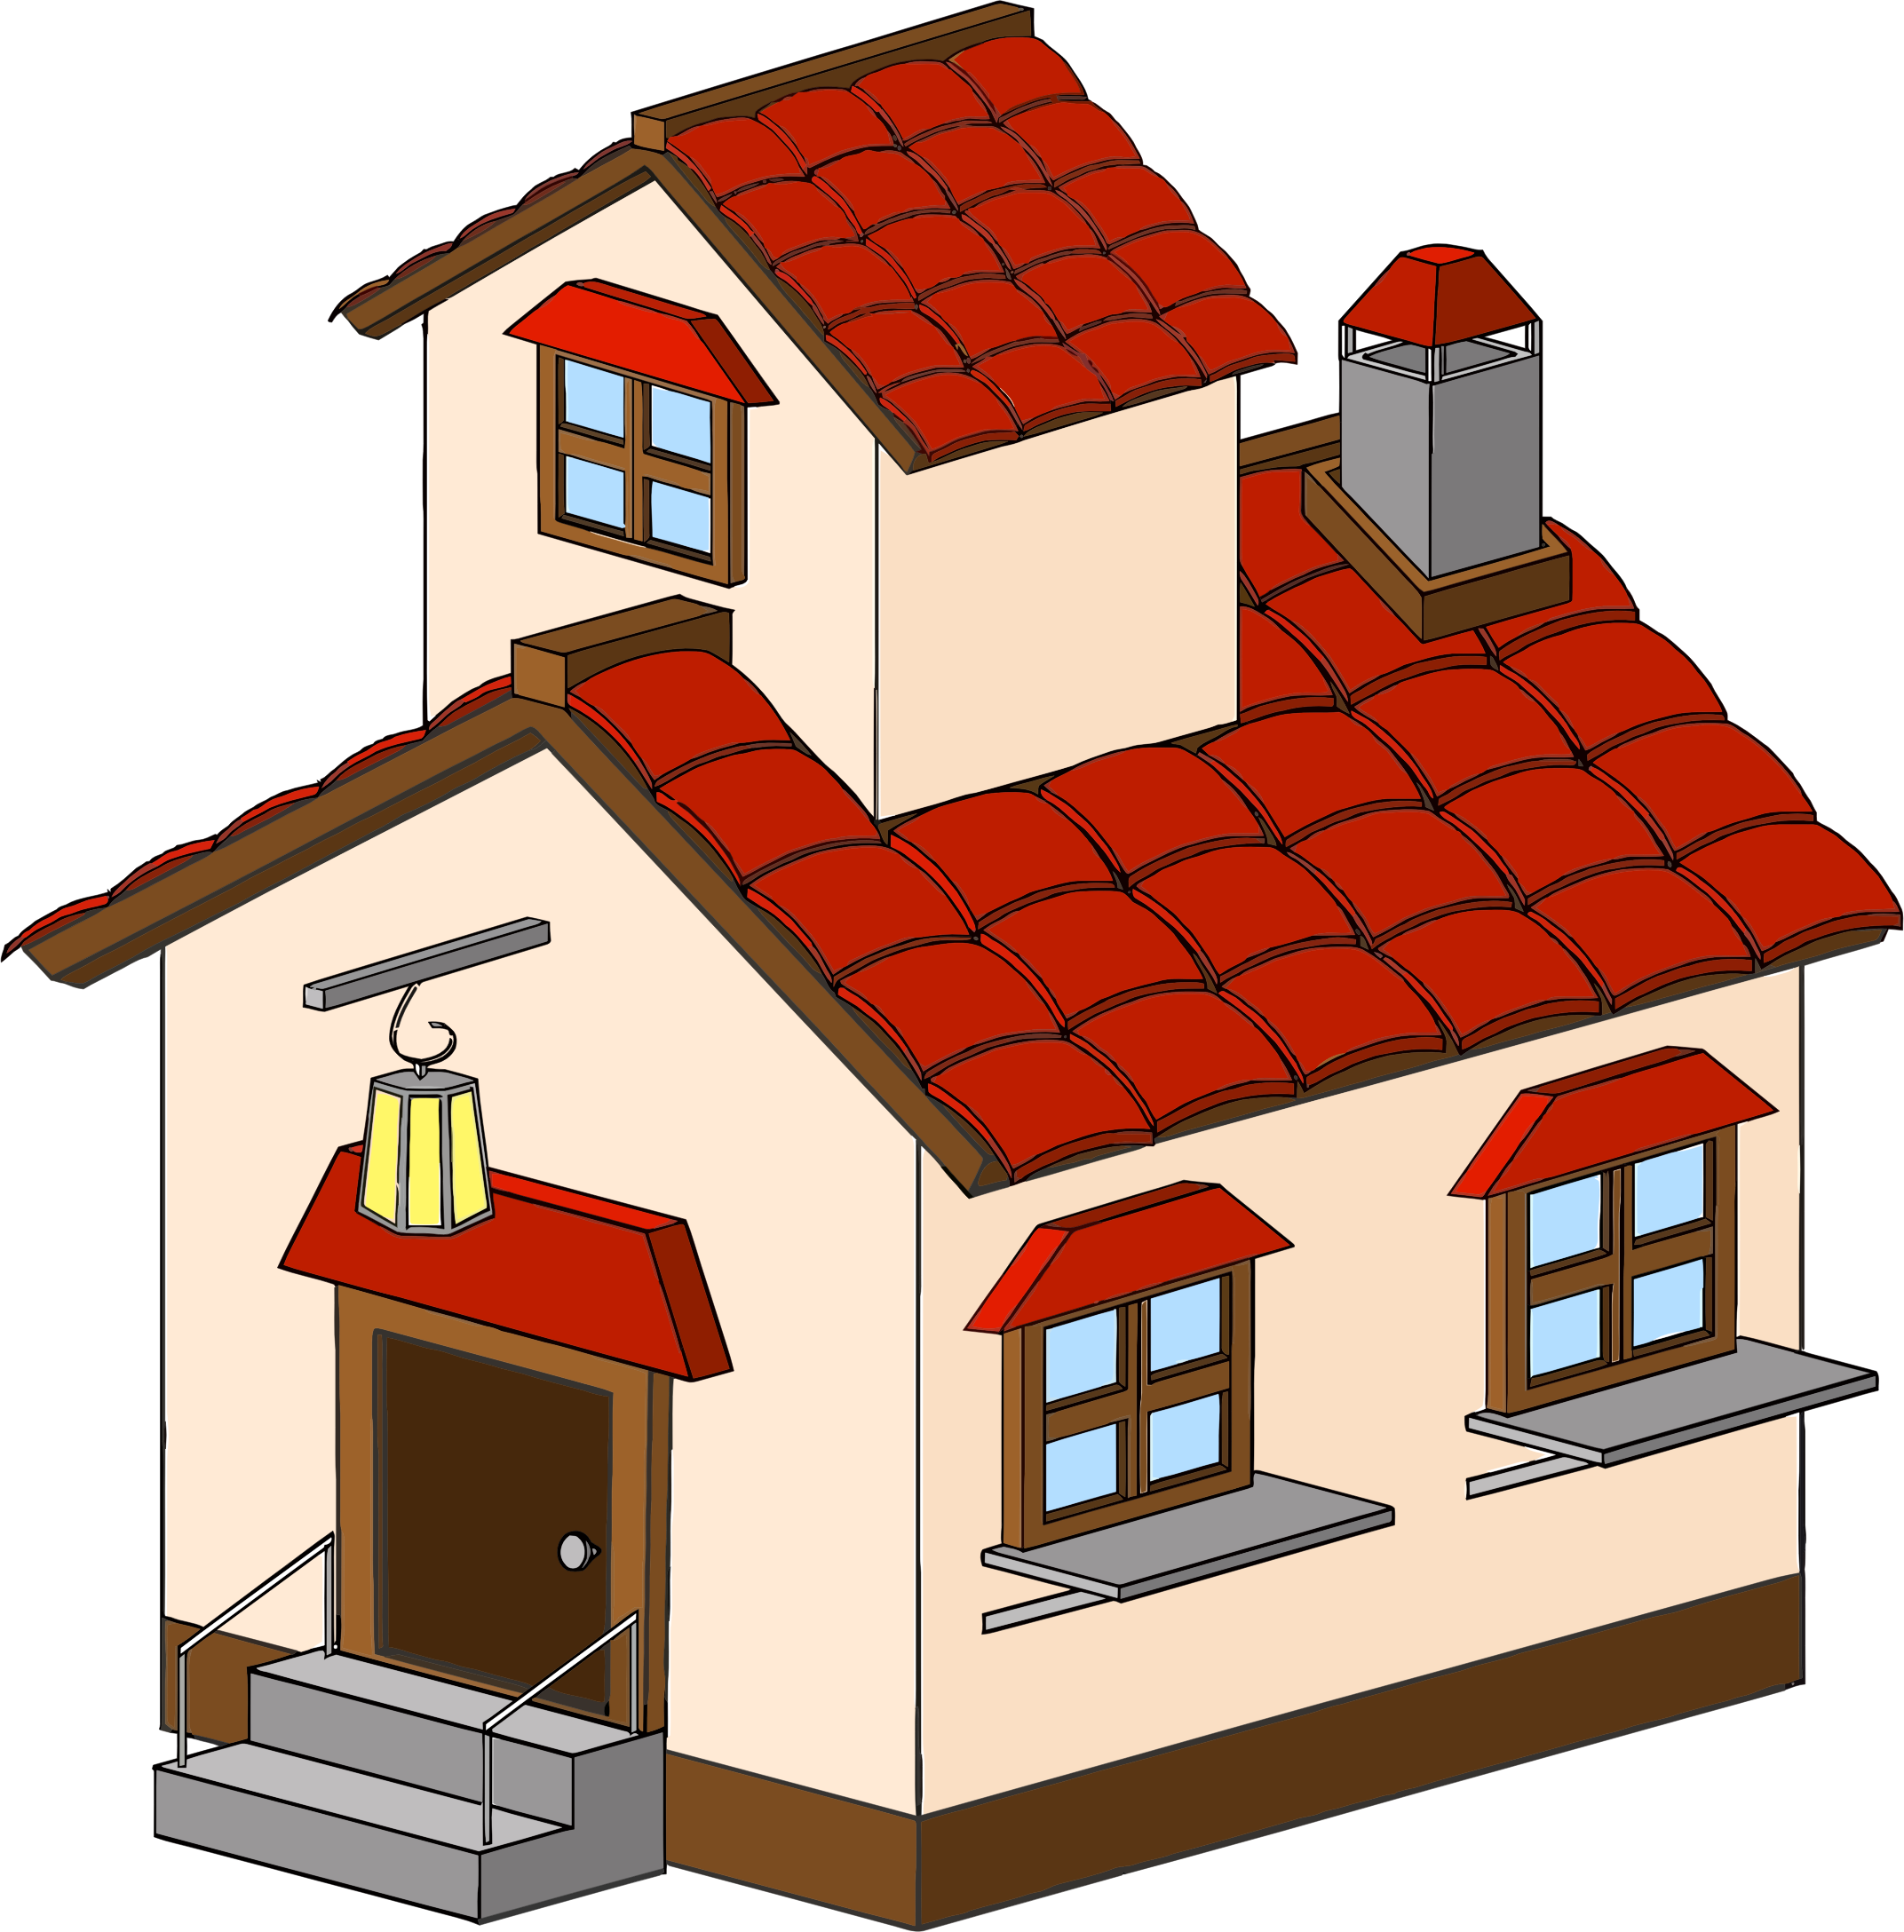 Pucca house pictures clipart best - Best house pictures ...